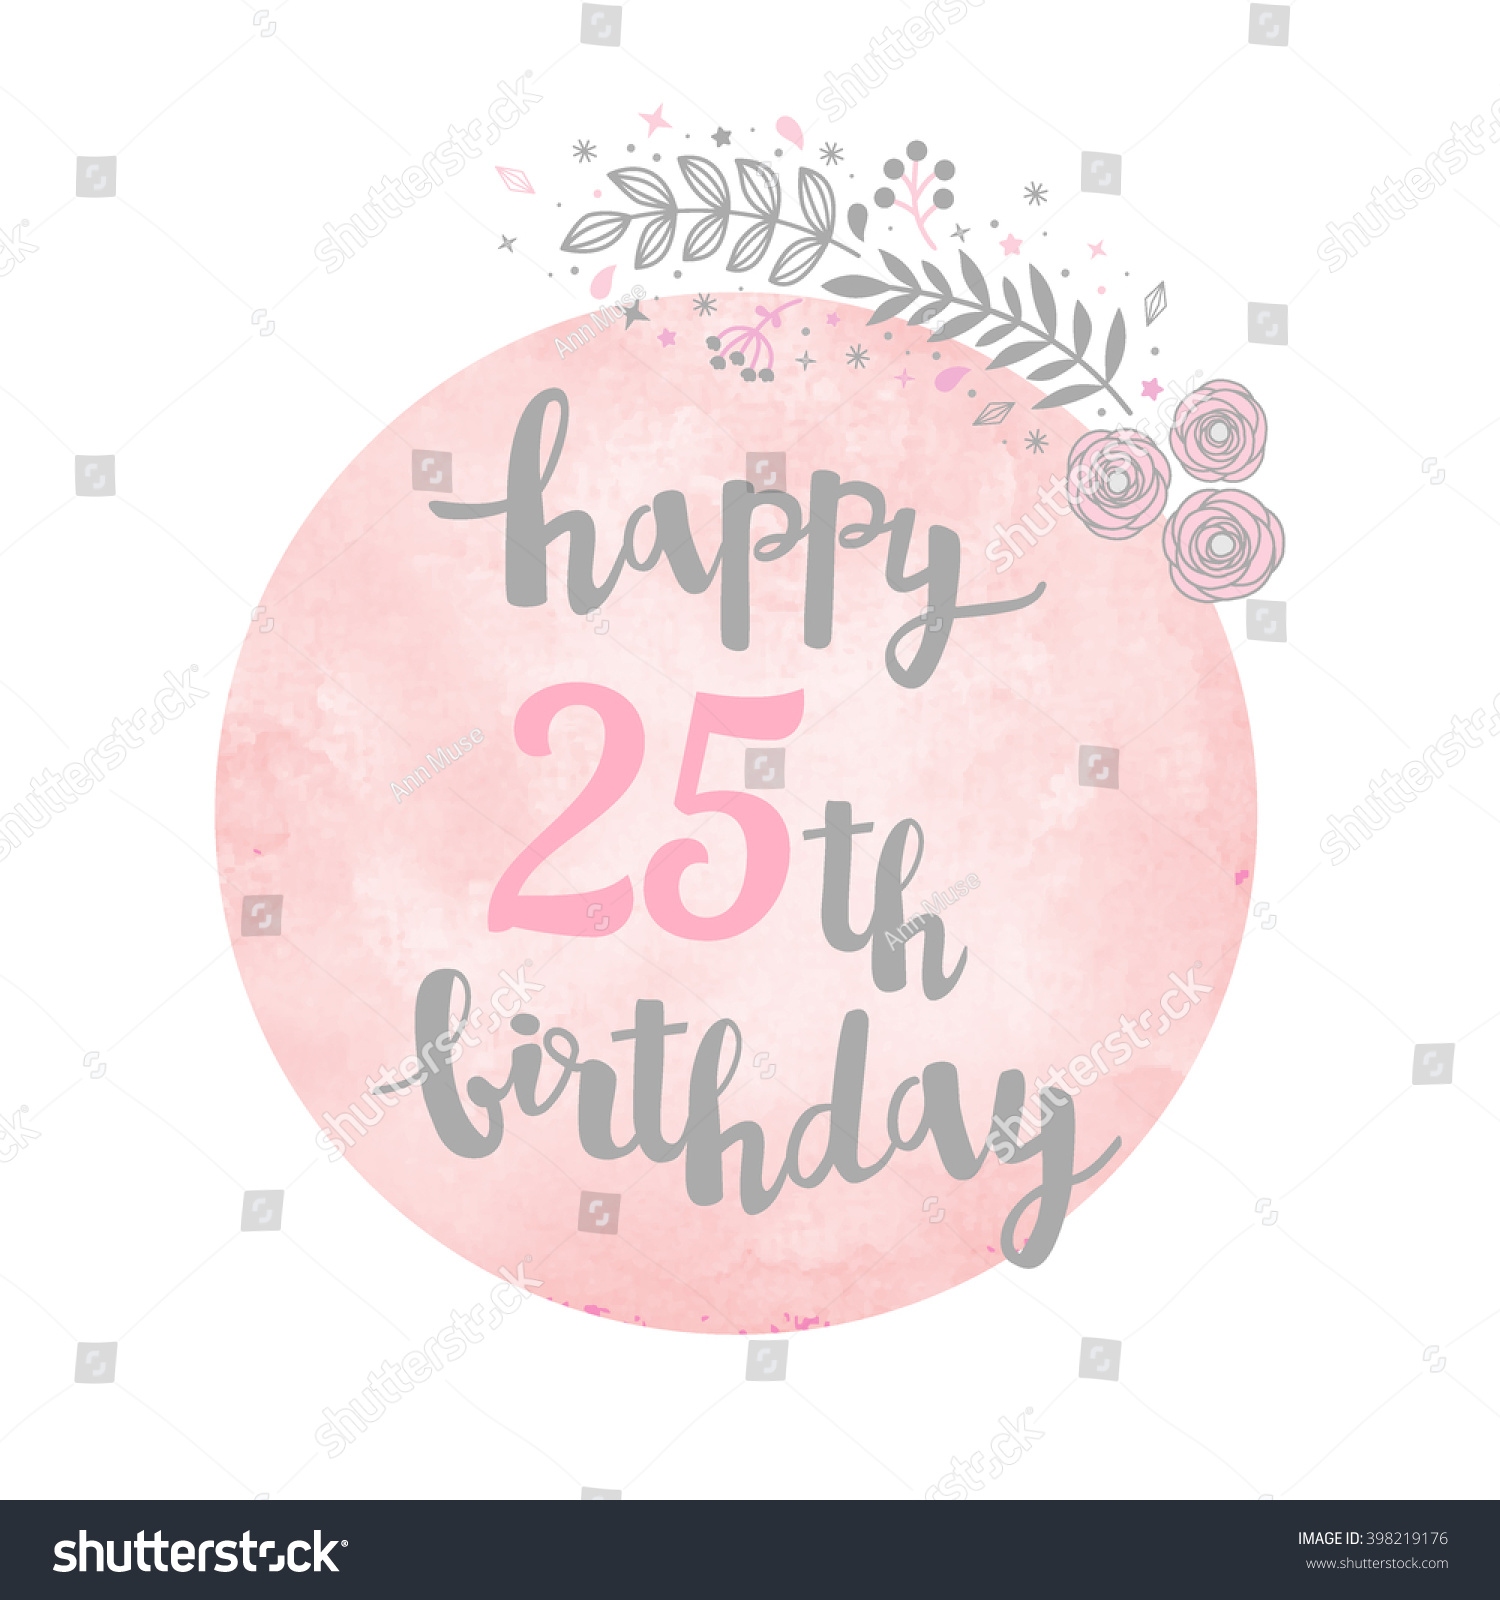 happy 25th birthday images ; stock-vector-happy-th-birthday-greeting-card-floral-pattern-watercolor-background-calligraphy-lettering-398219176